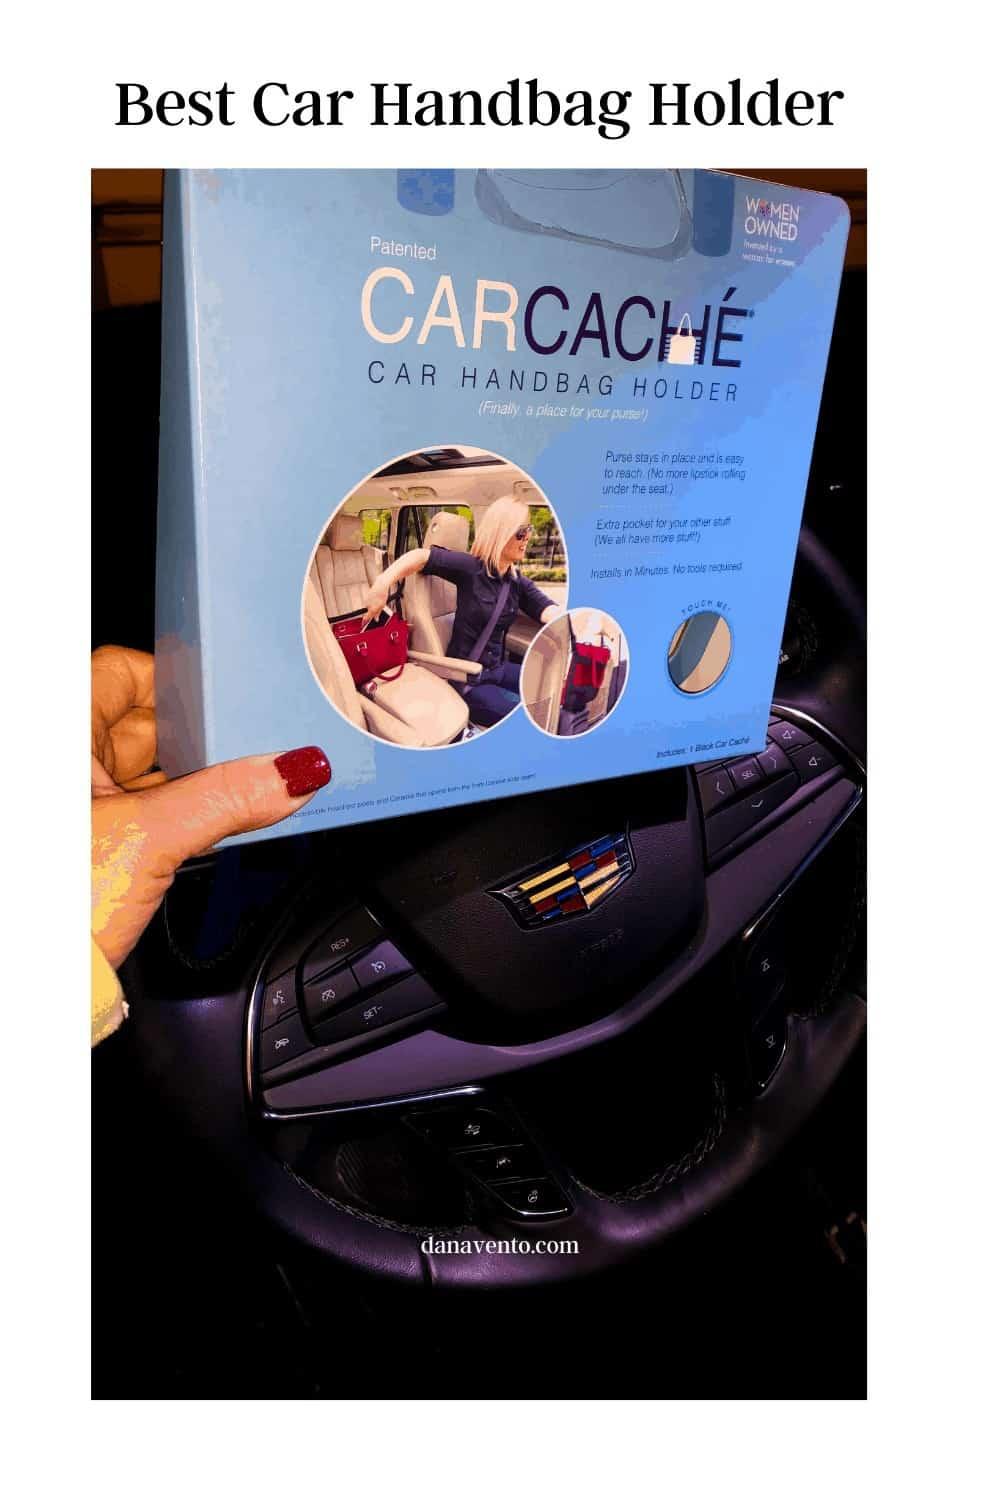 picture of car cache the best car handbag holder I have found